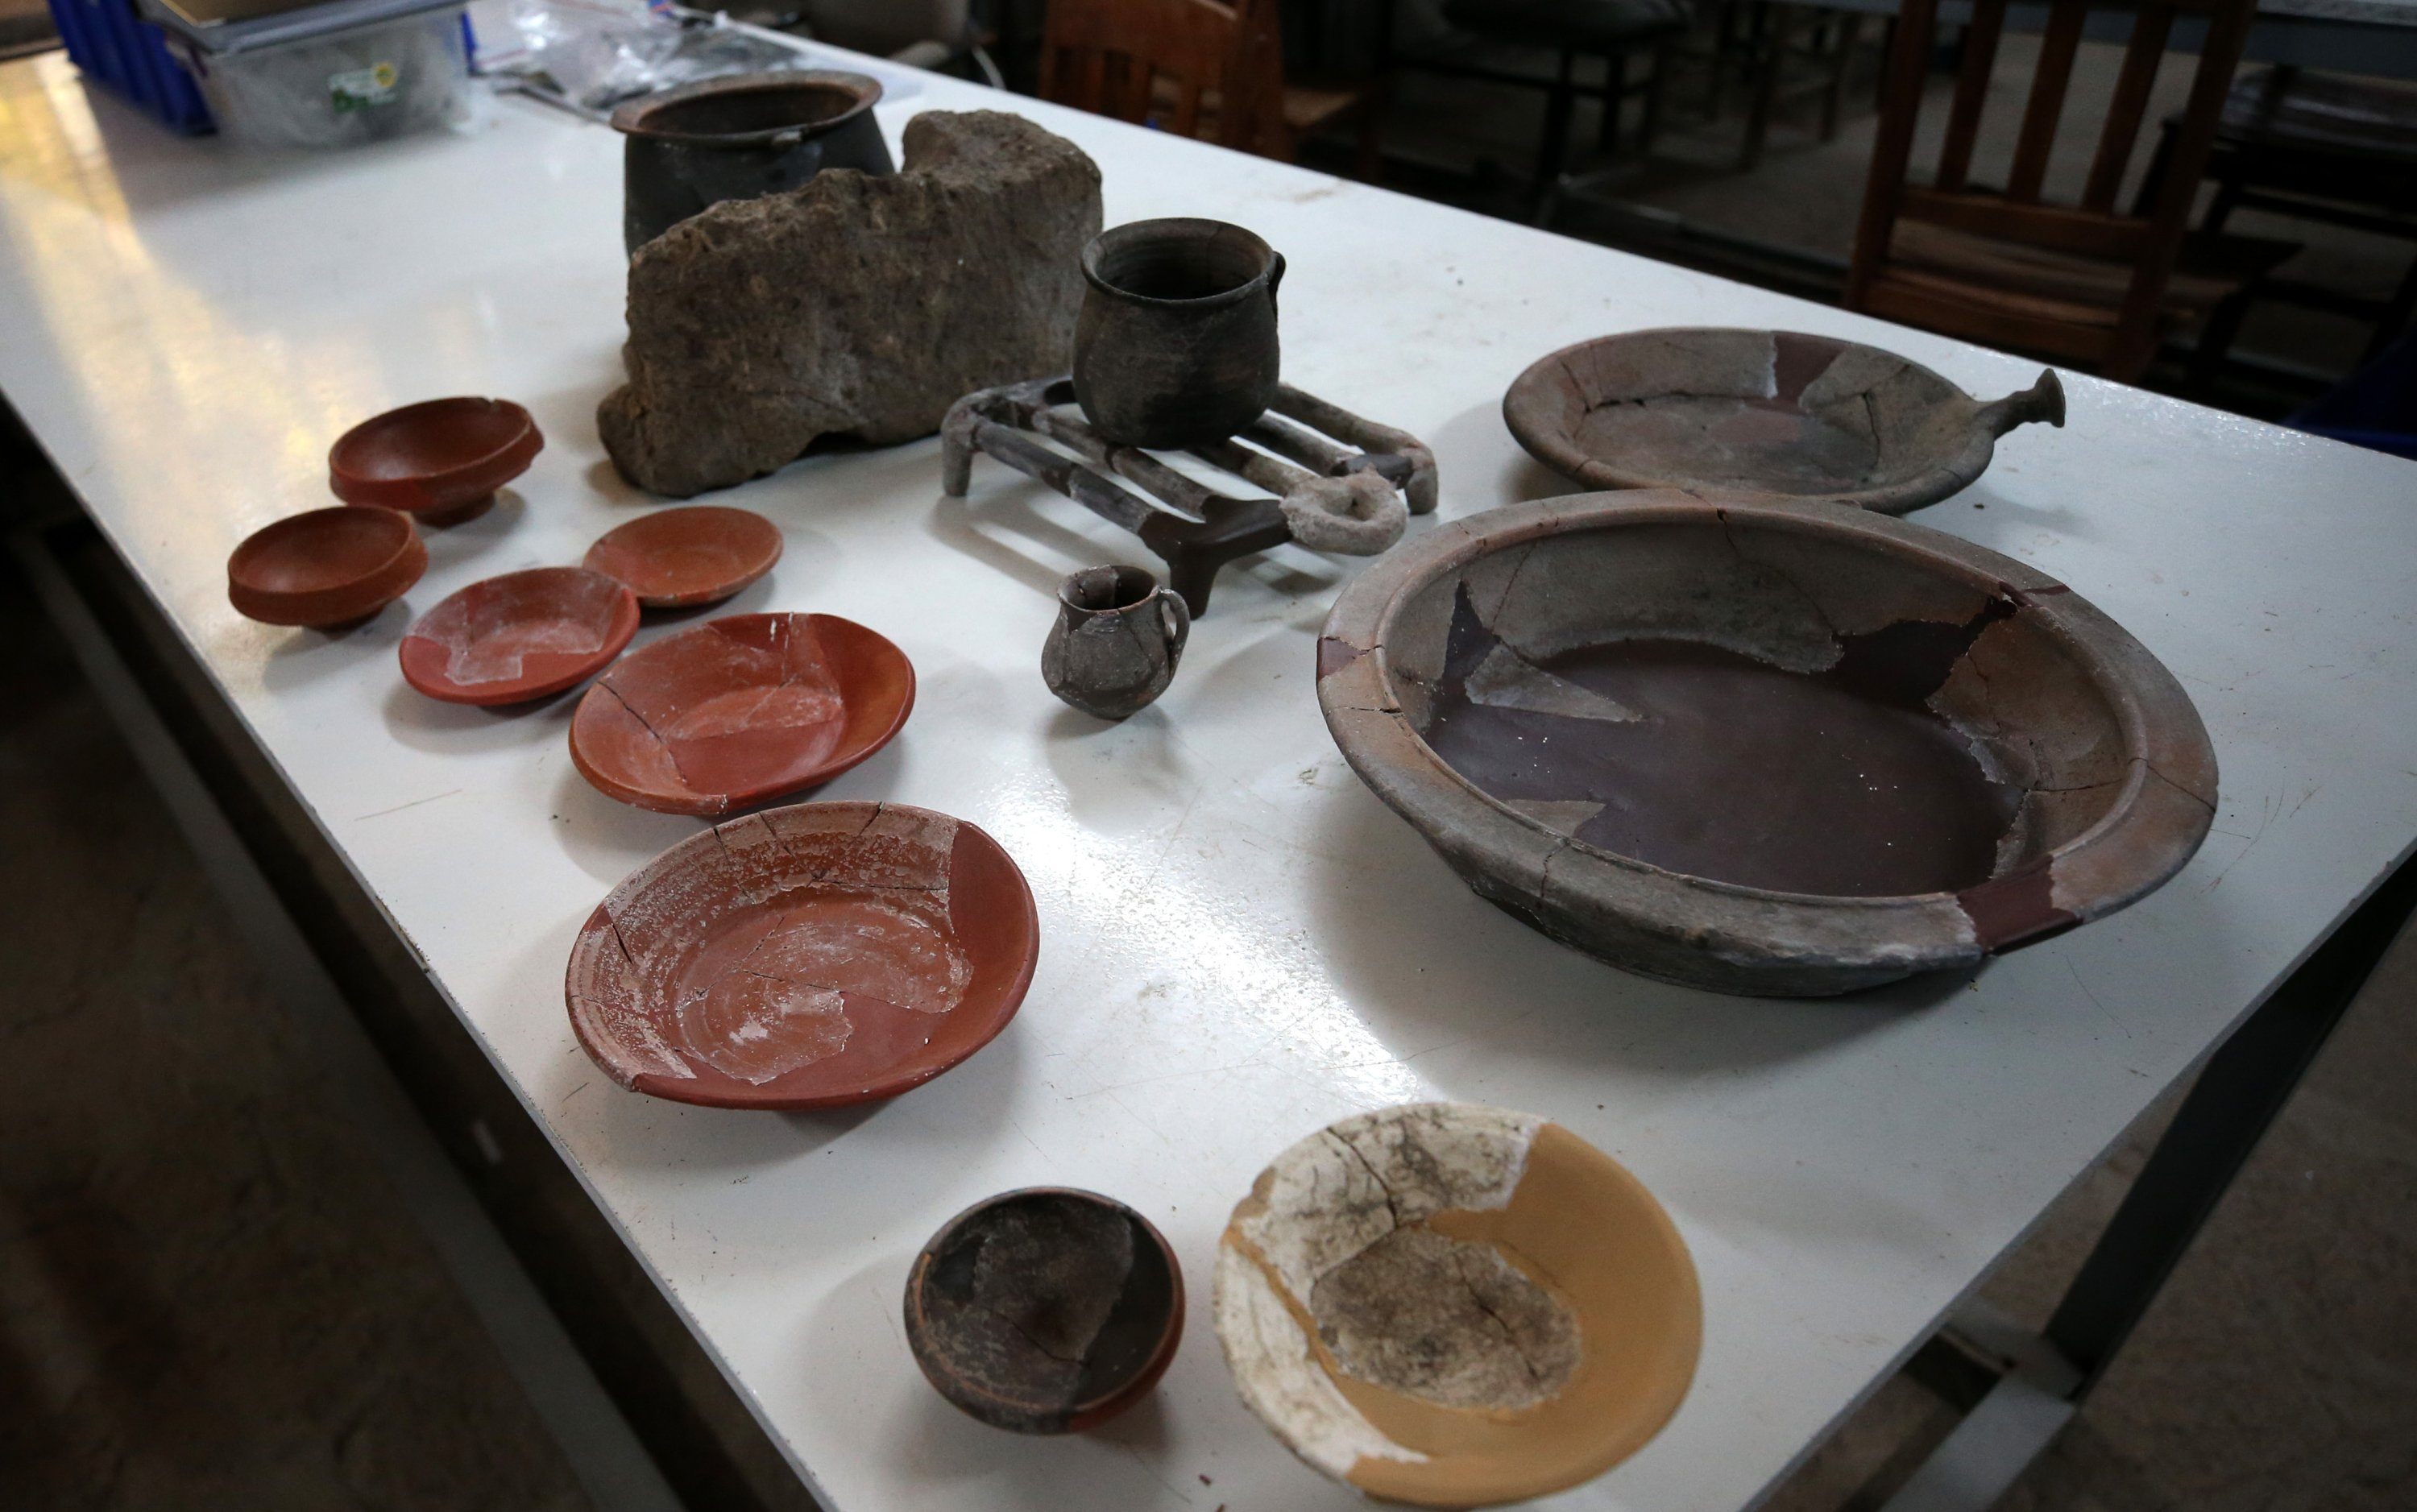 Pottery unearthed in the ancient city of Assos, Çanakkale, Turkey, Sept. 8, 2021. (AA Photo)